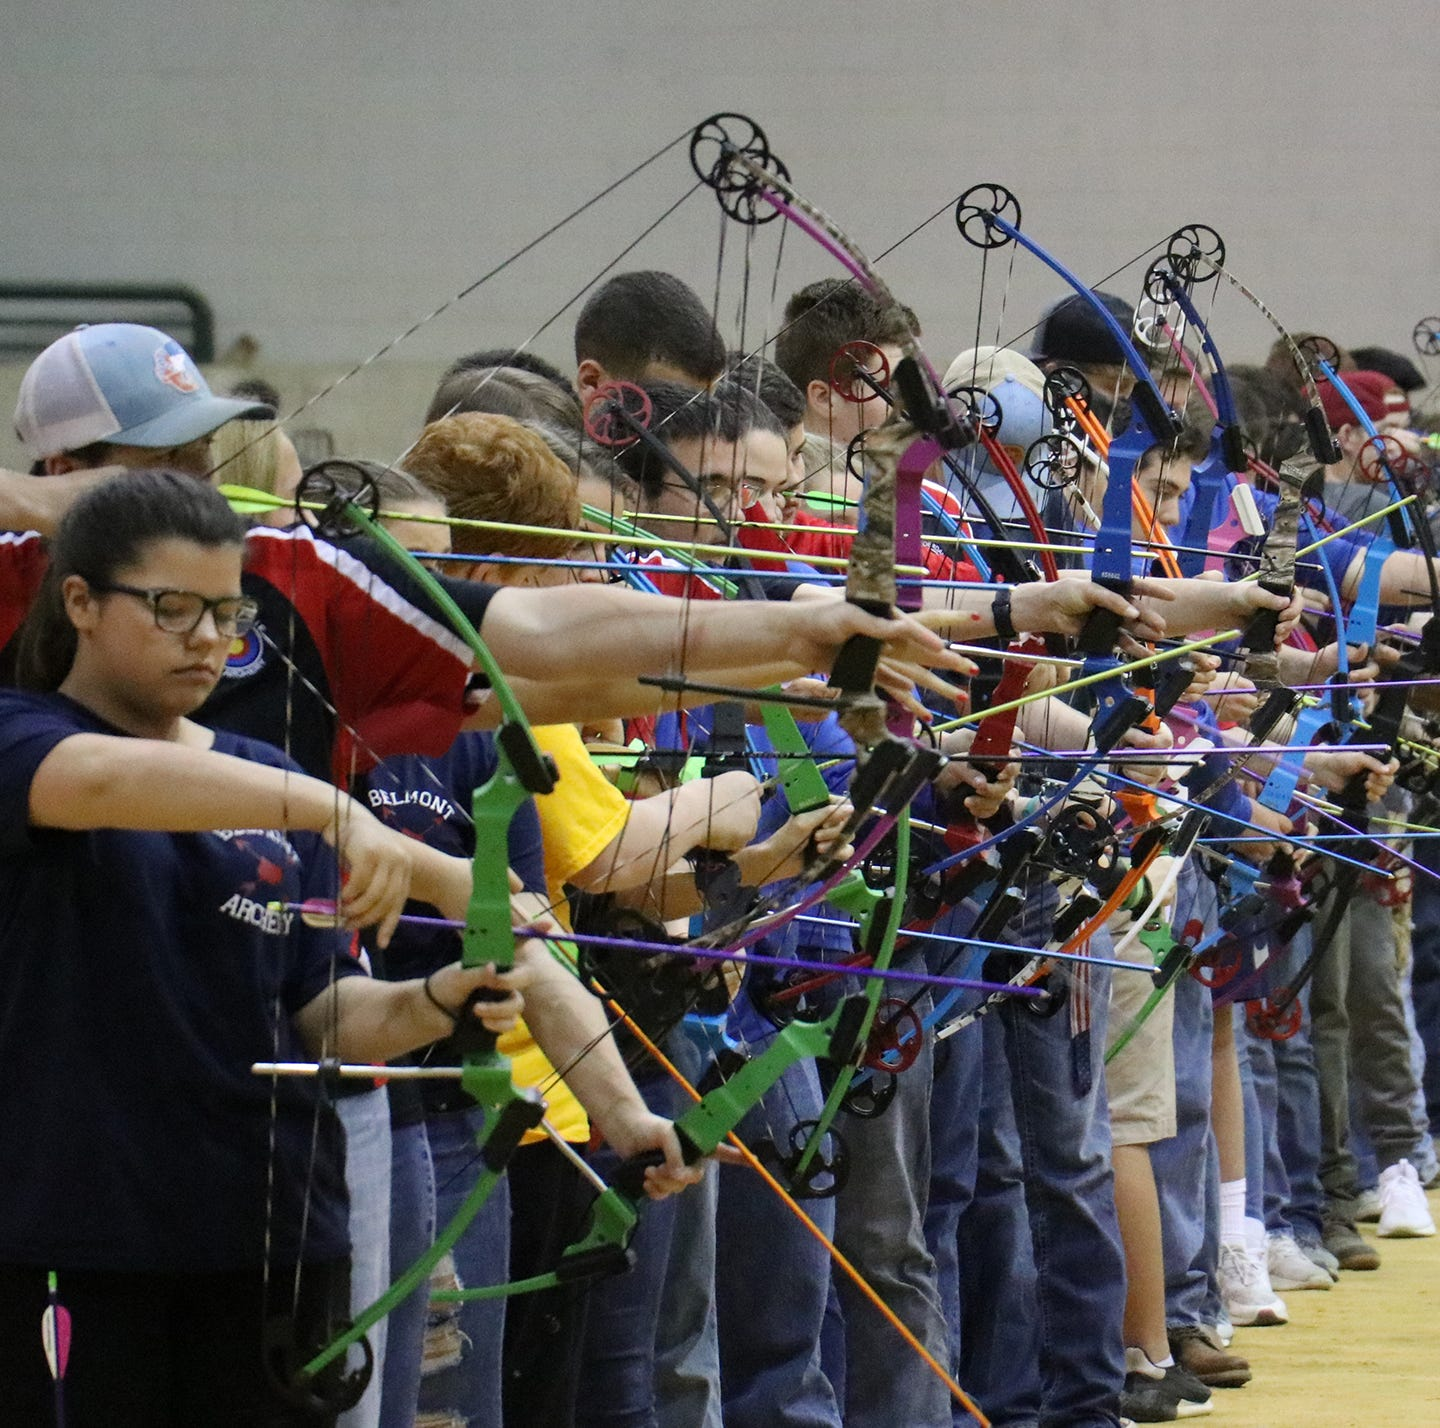 Mississippi archery championships: 2 schools take aim, sweep divisions